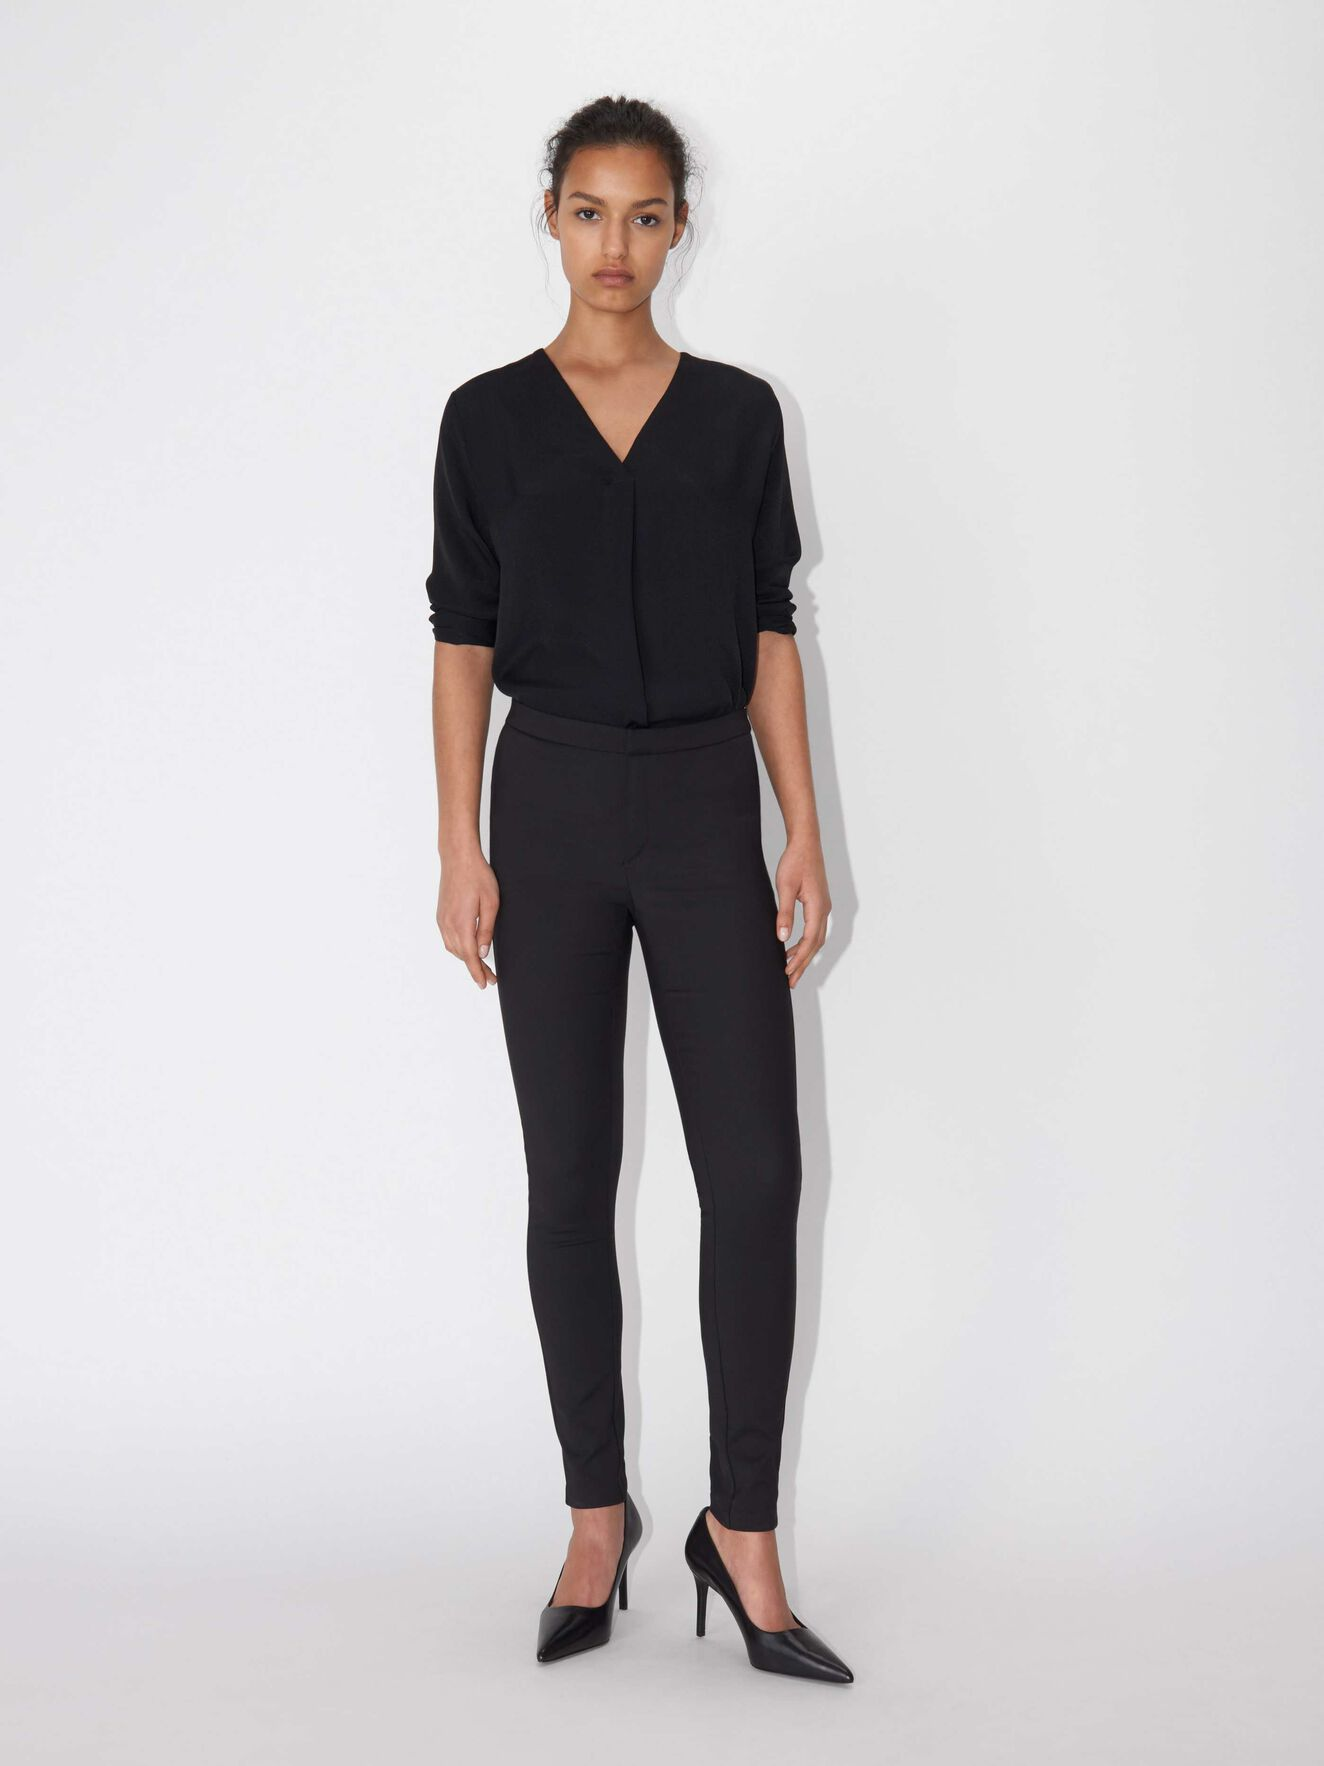 Cristin S trousers in Black from Tiger of Sweden